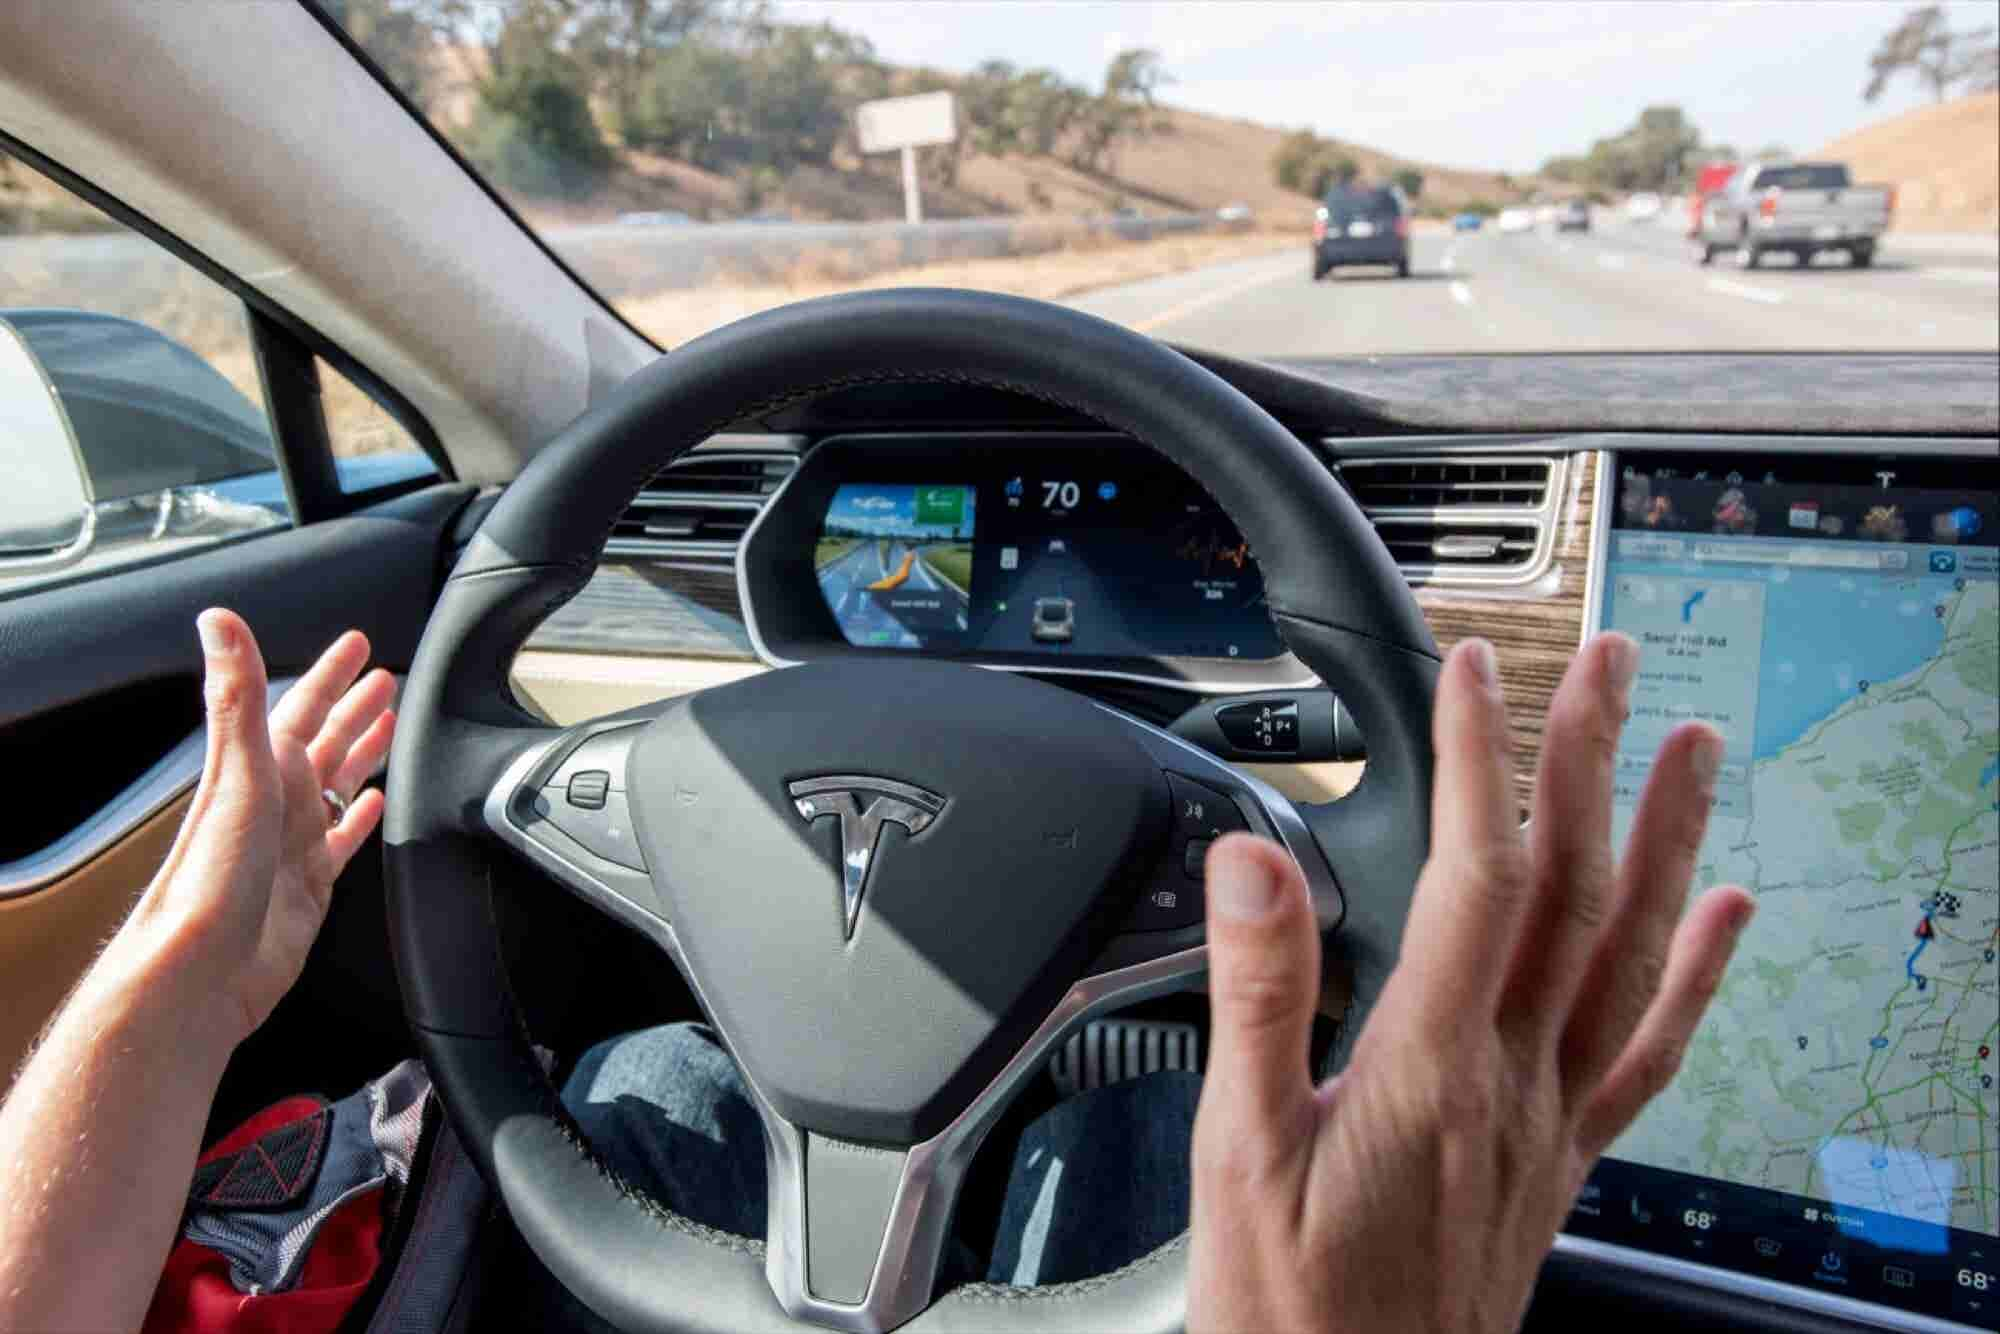 U.S. Opens Investigation After Fatal Crash in Tesla's Autopilot Mode